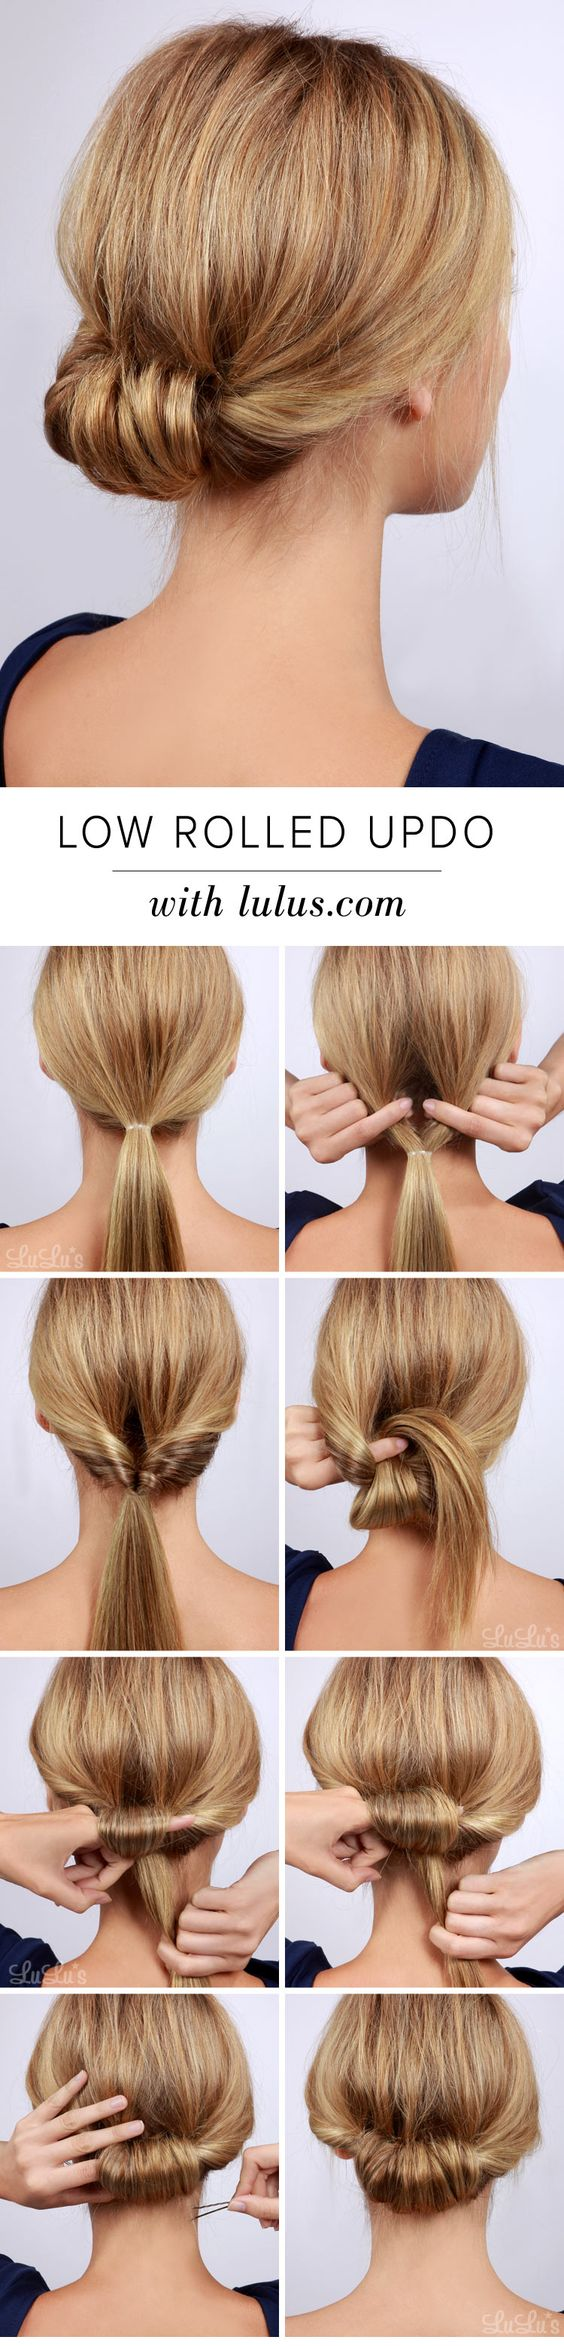 11 Easy Step By Step Updo Tutorials For Beginners Hair Wrap